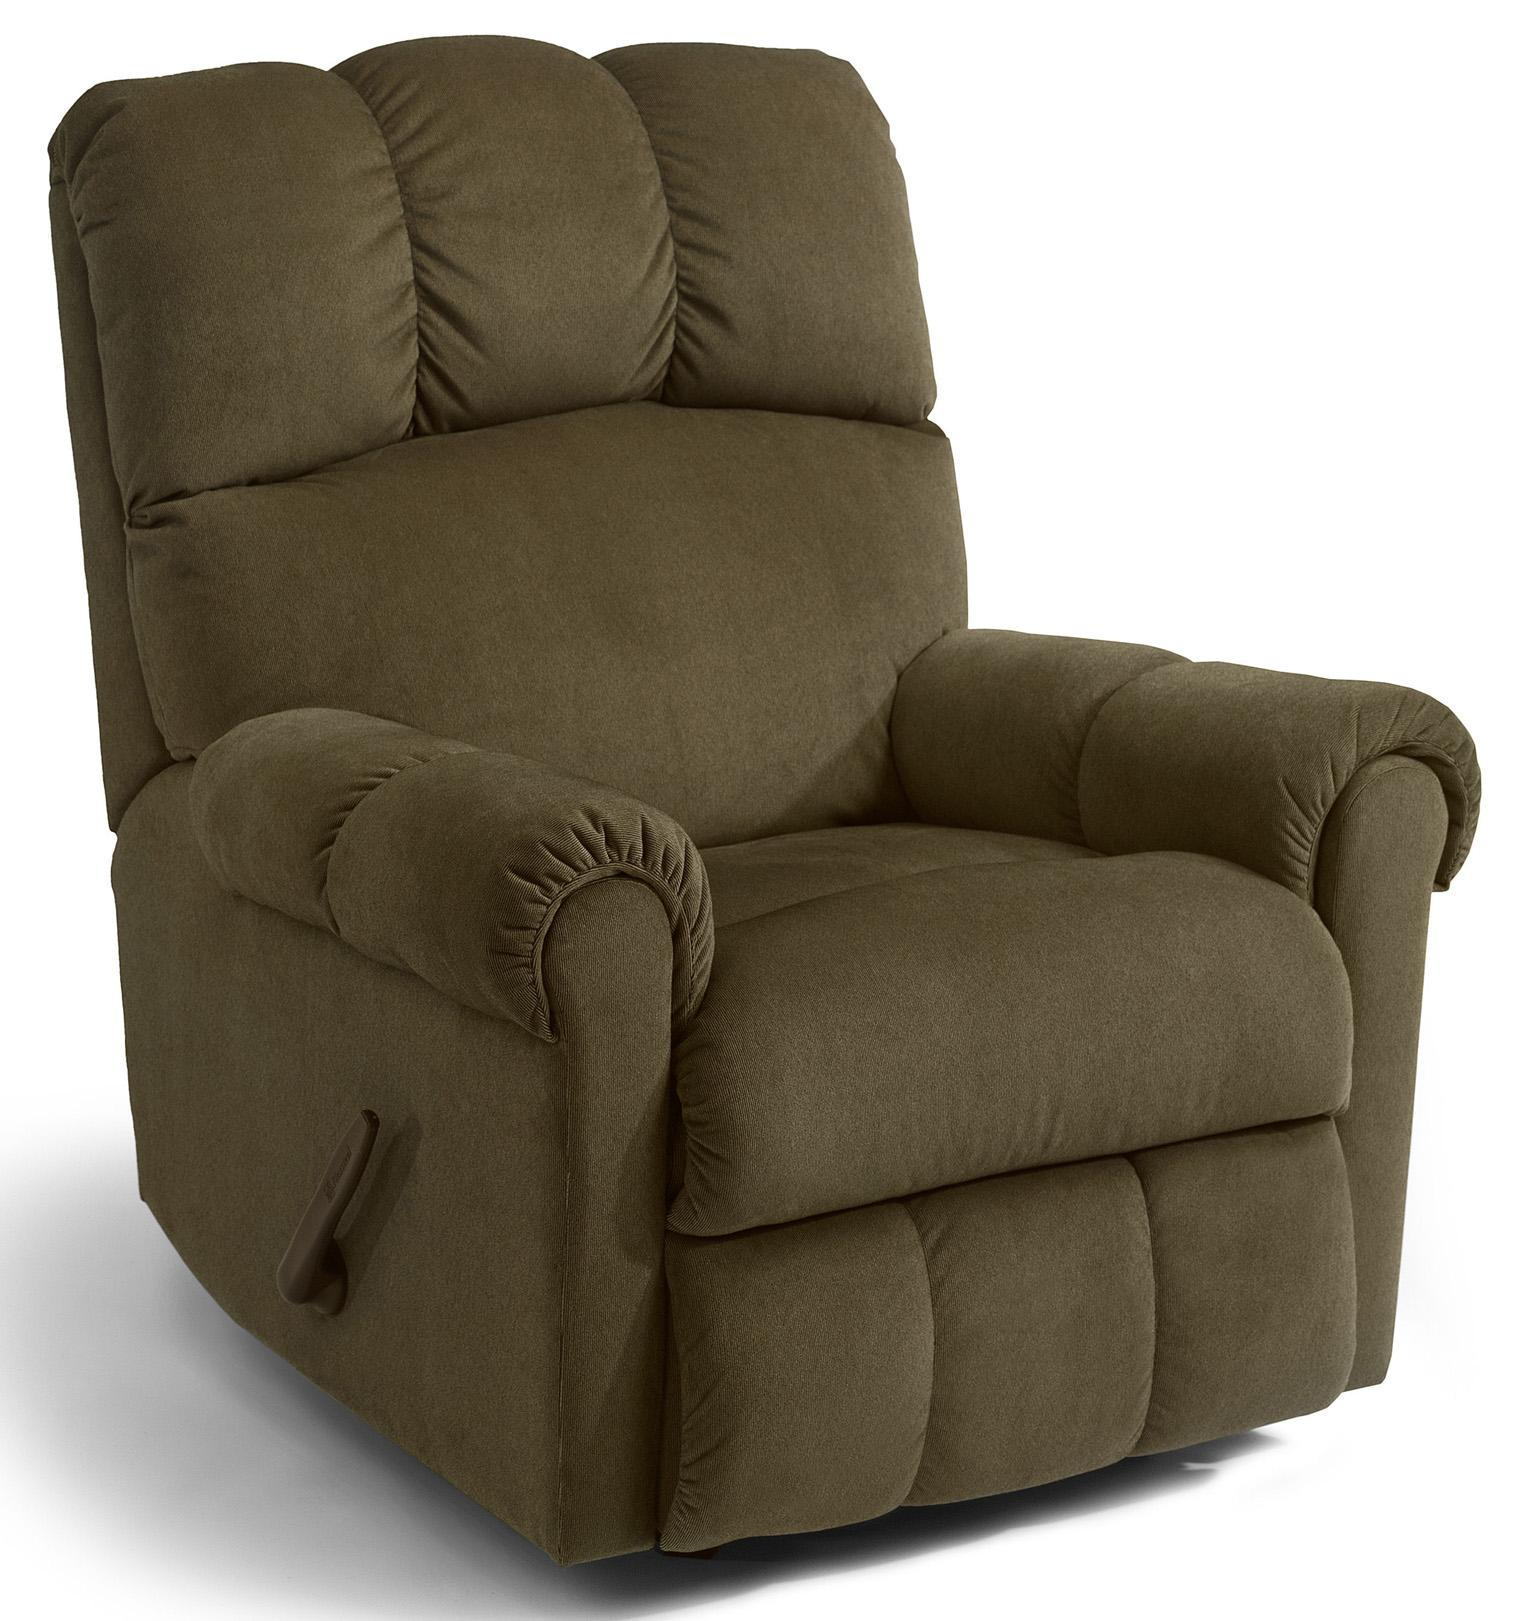 Flexsteel Mcgee 2840 53 Casual Swivel Glider Recliner With